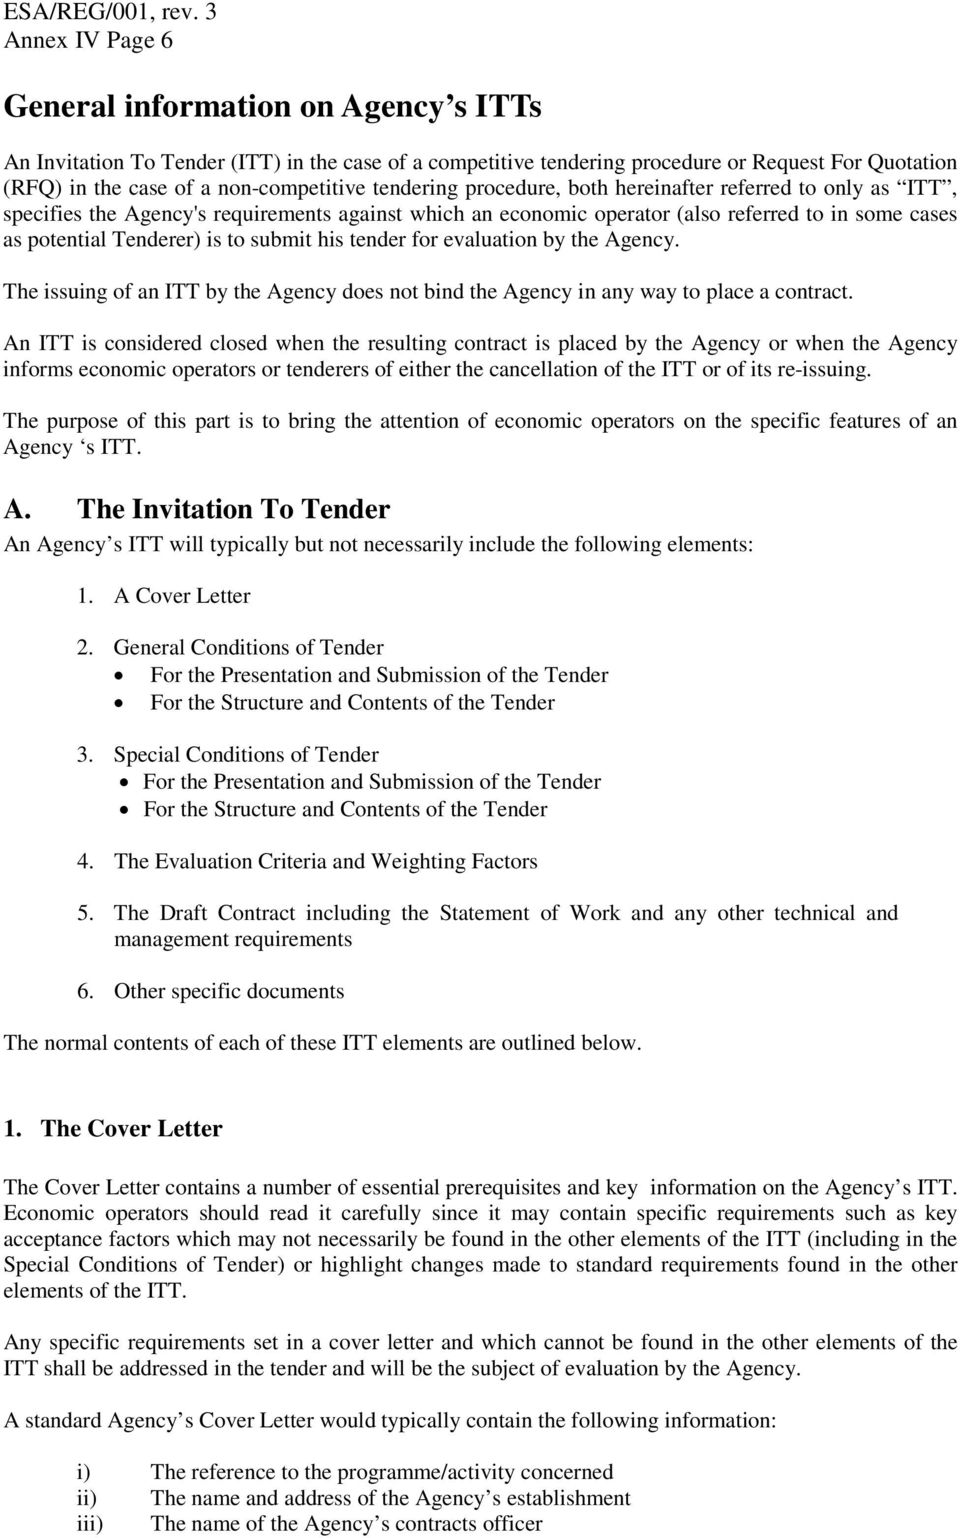 submit his tender for evaluation by the Agency. The issuing of an ITT by the Agency does not bind the Agency in any way to place a contract.